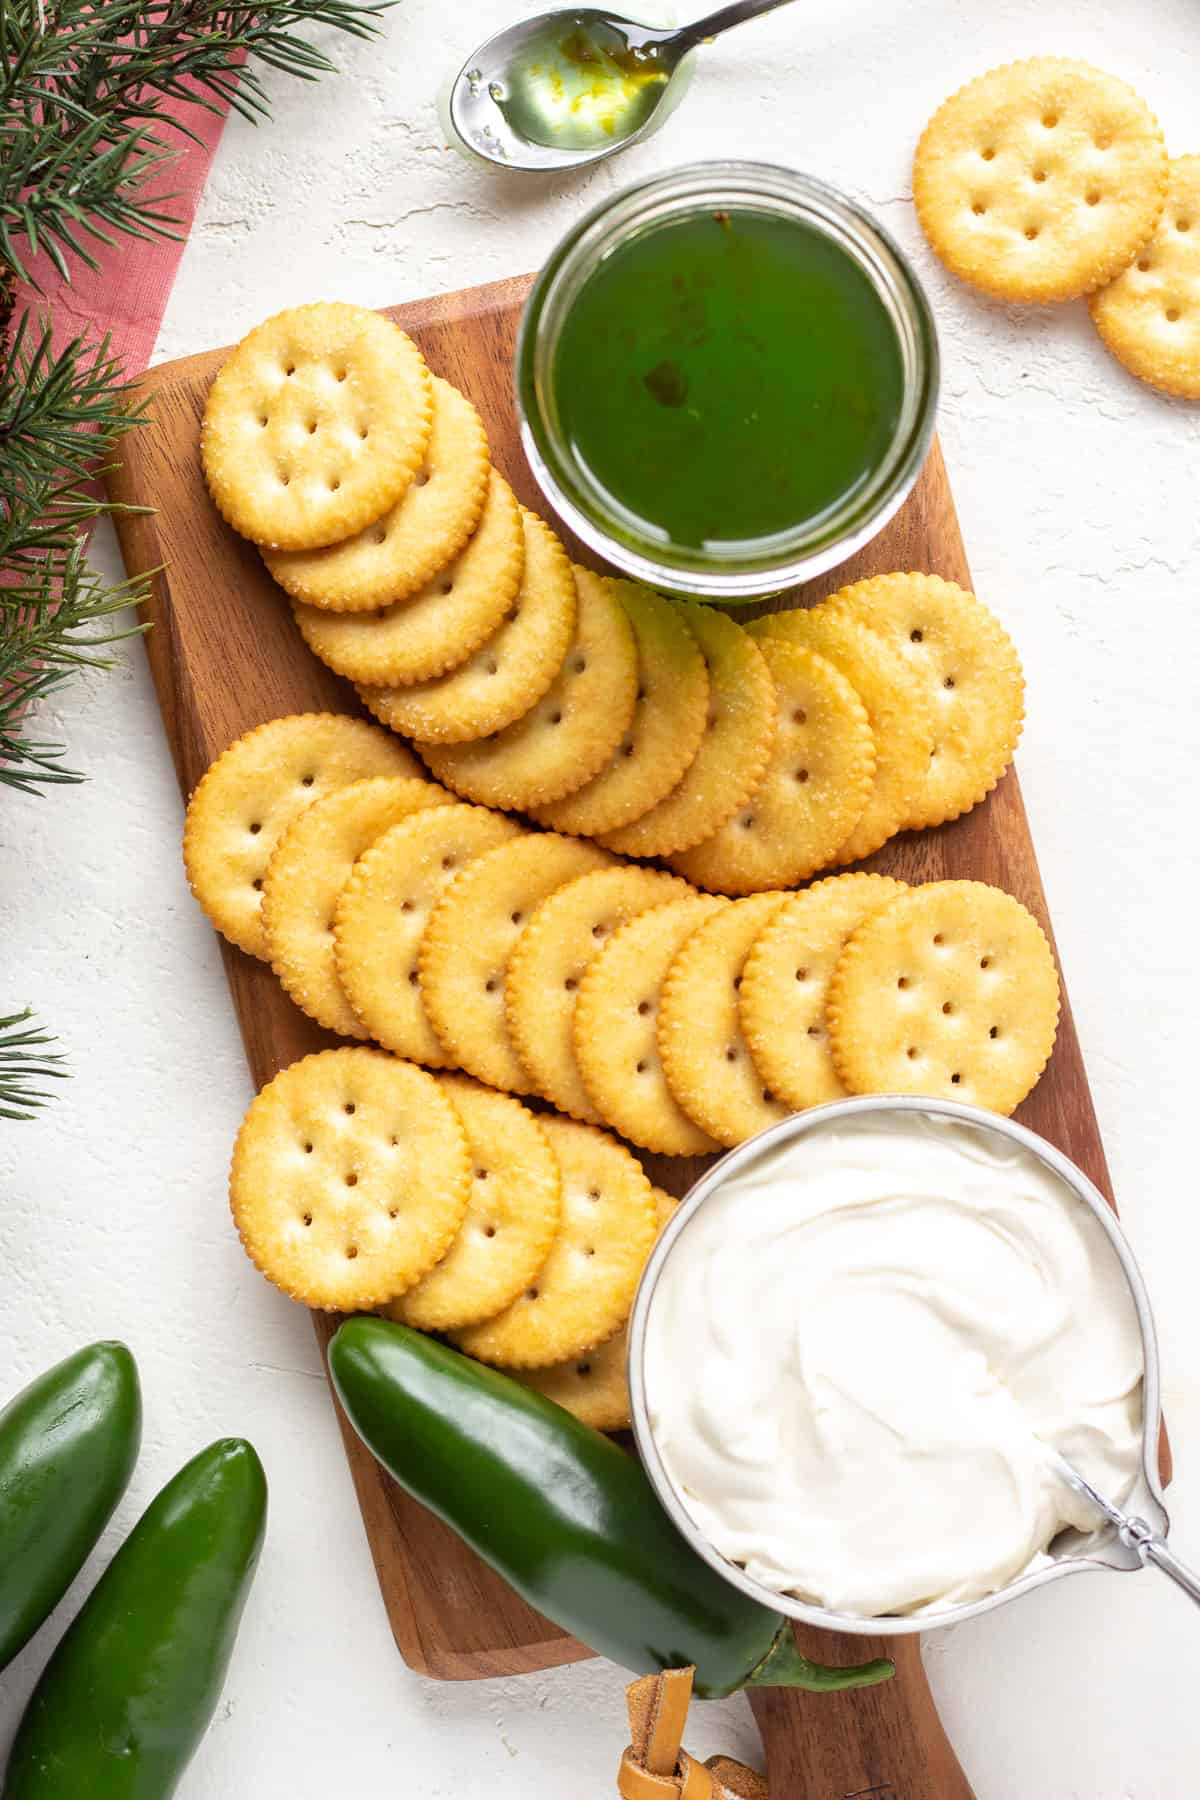 Top view of crackers lined up with cream cheese and hot pepper jelly.